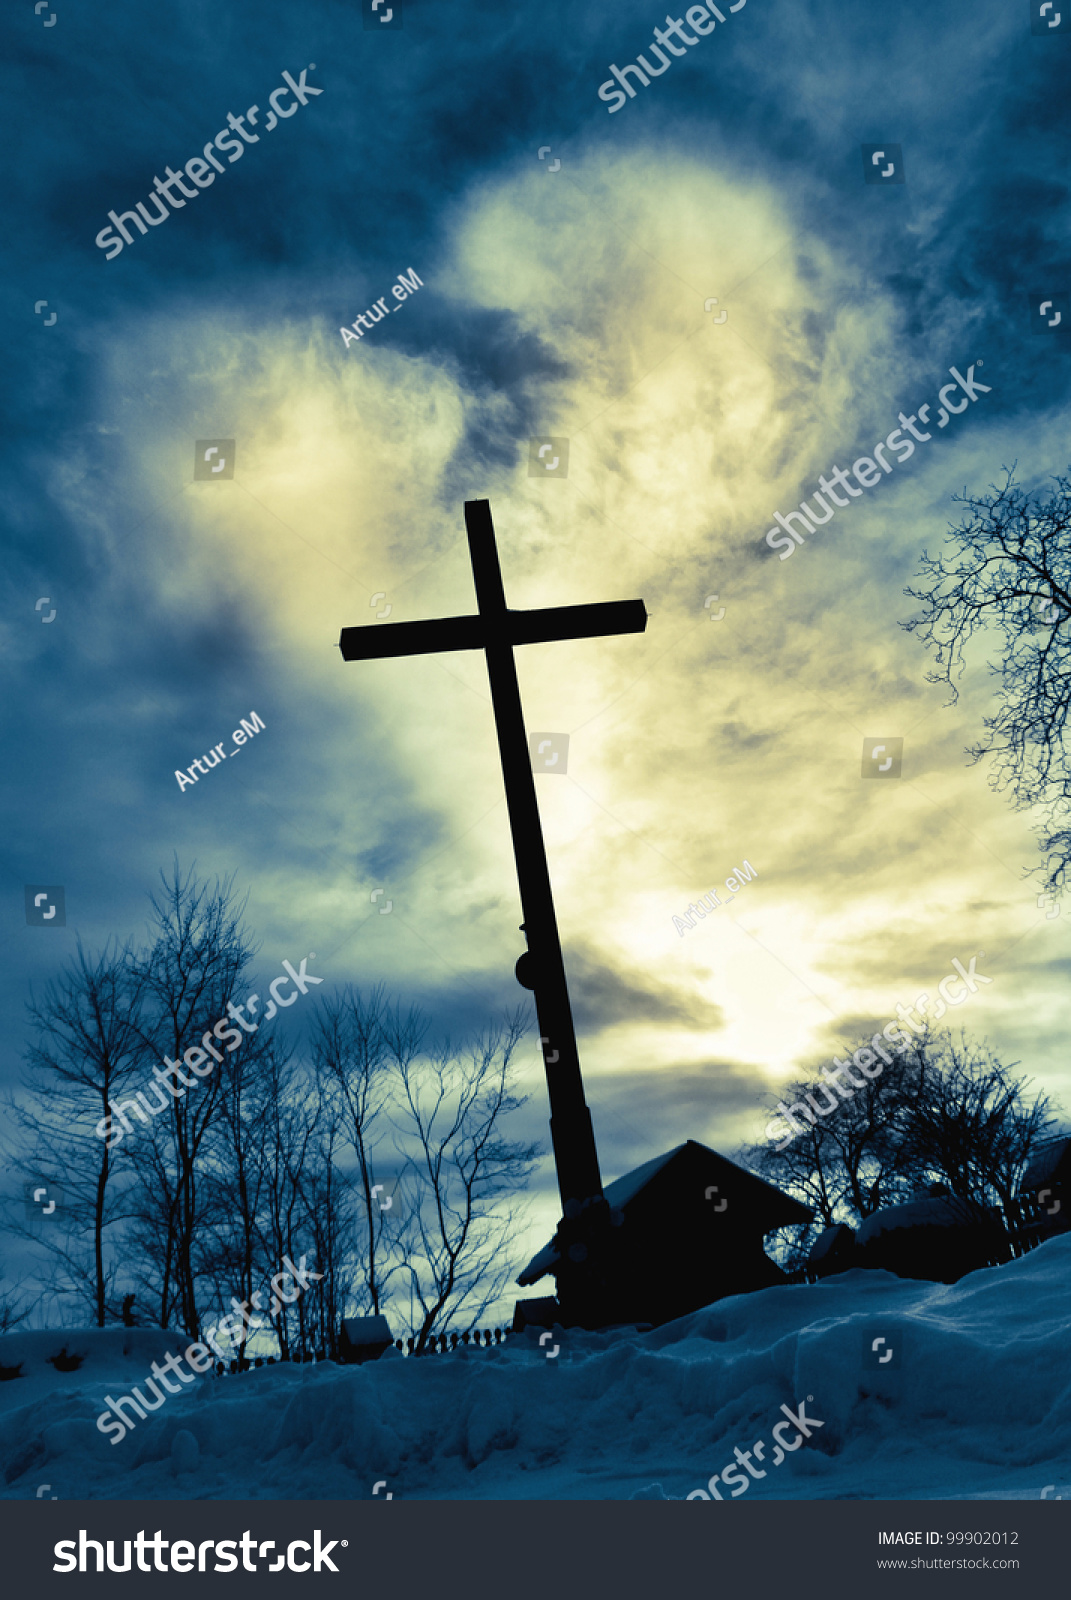 Silhouette of the holy cross on background of storm clouds stock - Dramatic Sky Cloud With Deep Blue Heart Shape Shining Behind Jesus Cross